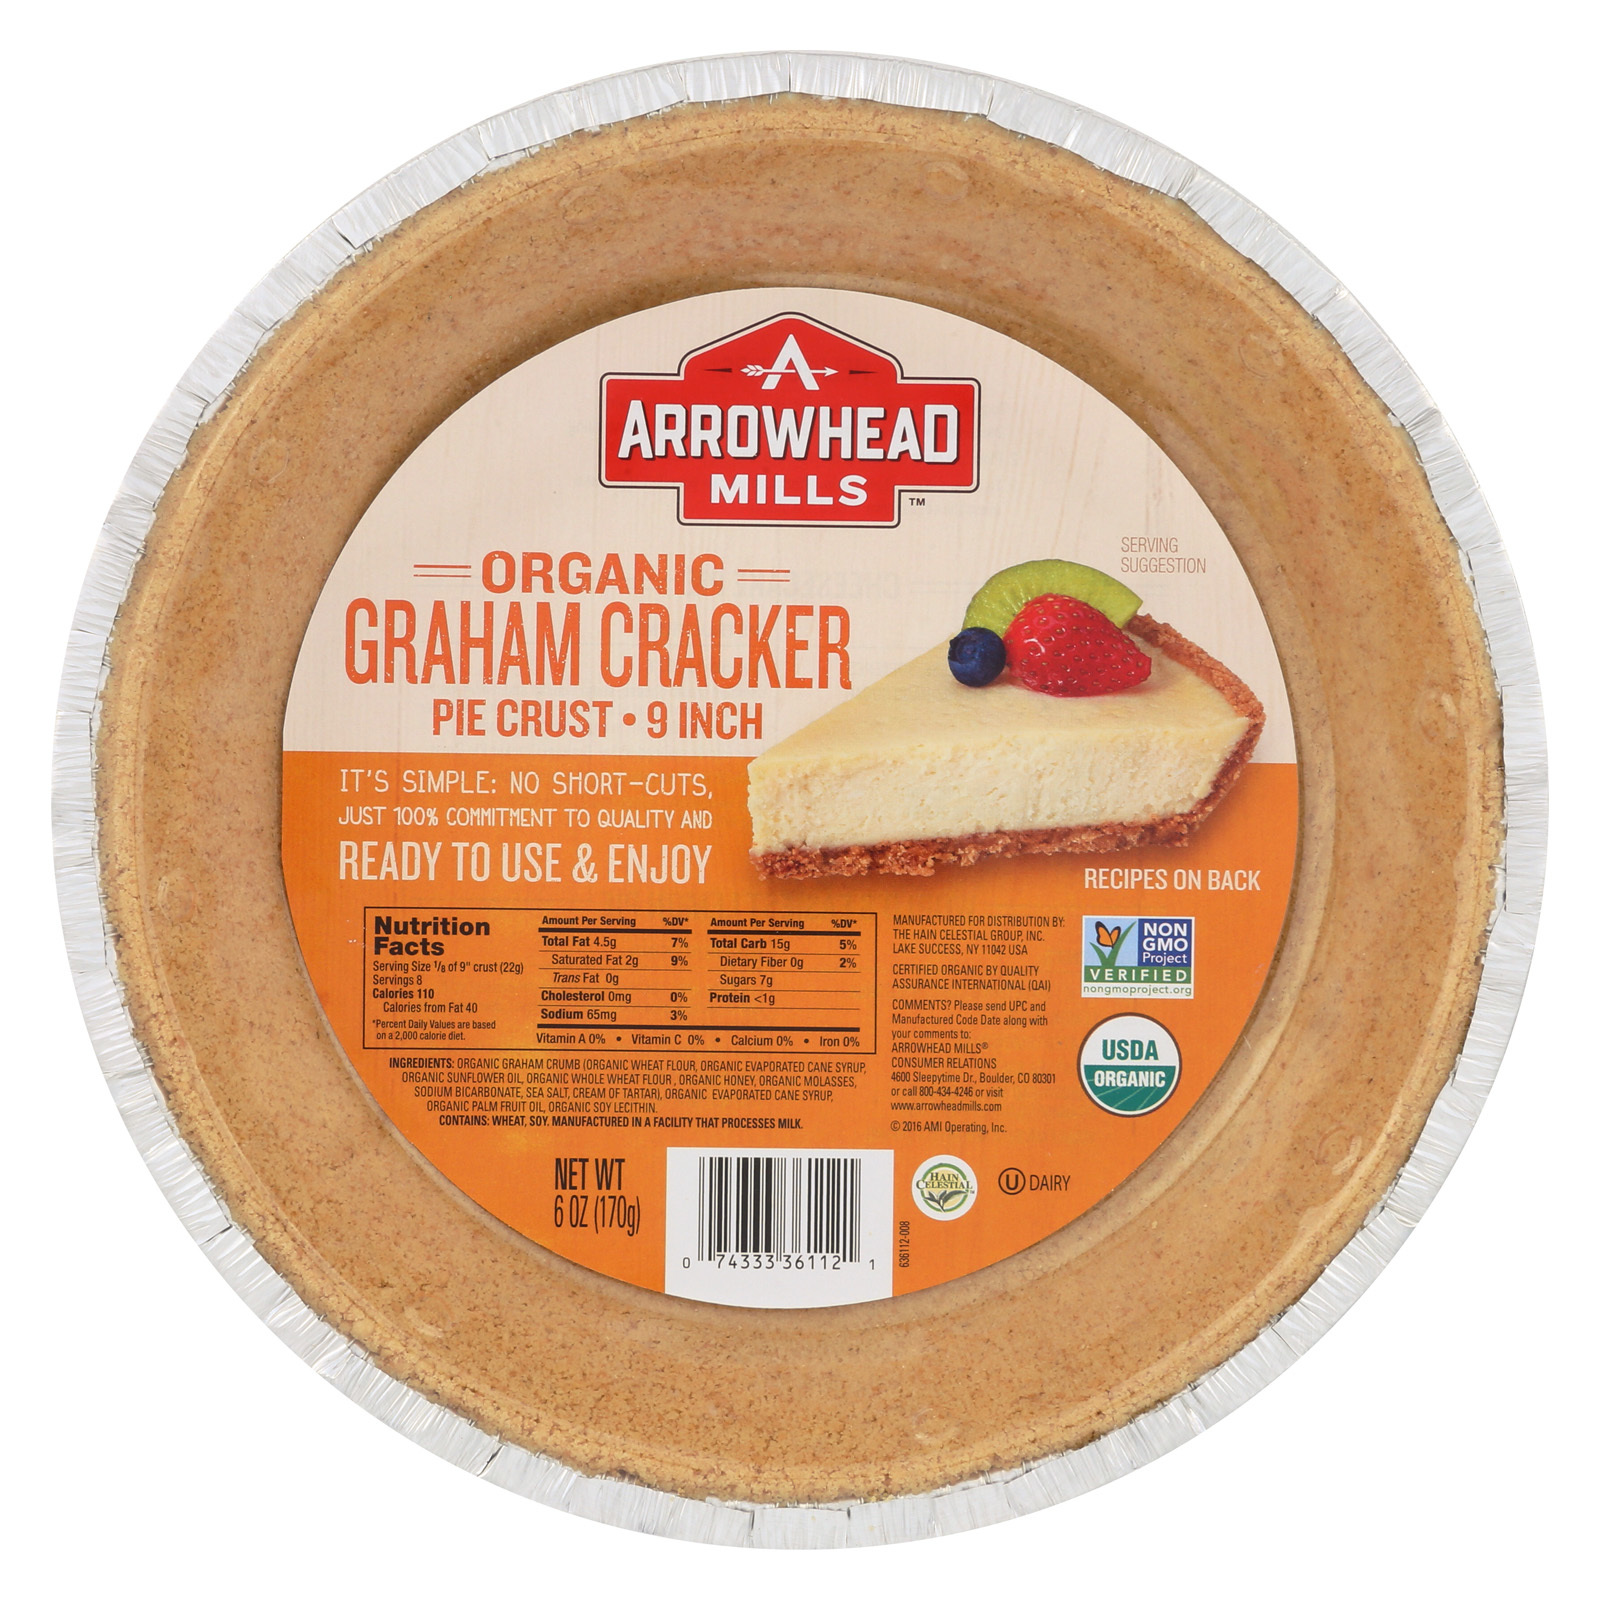 Arrowhead Mills Organic Graham Cracker Pie Crust - Case of 12 - 6 oz.